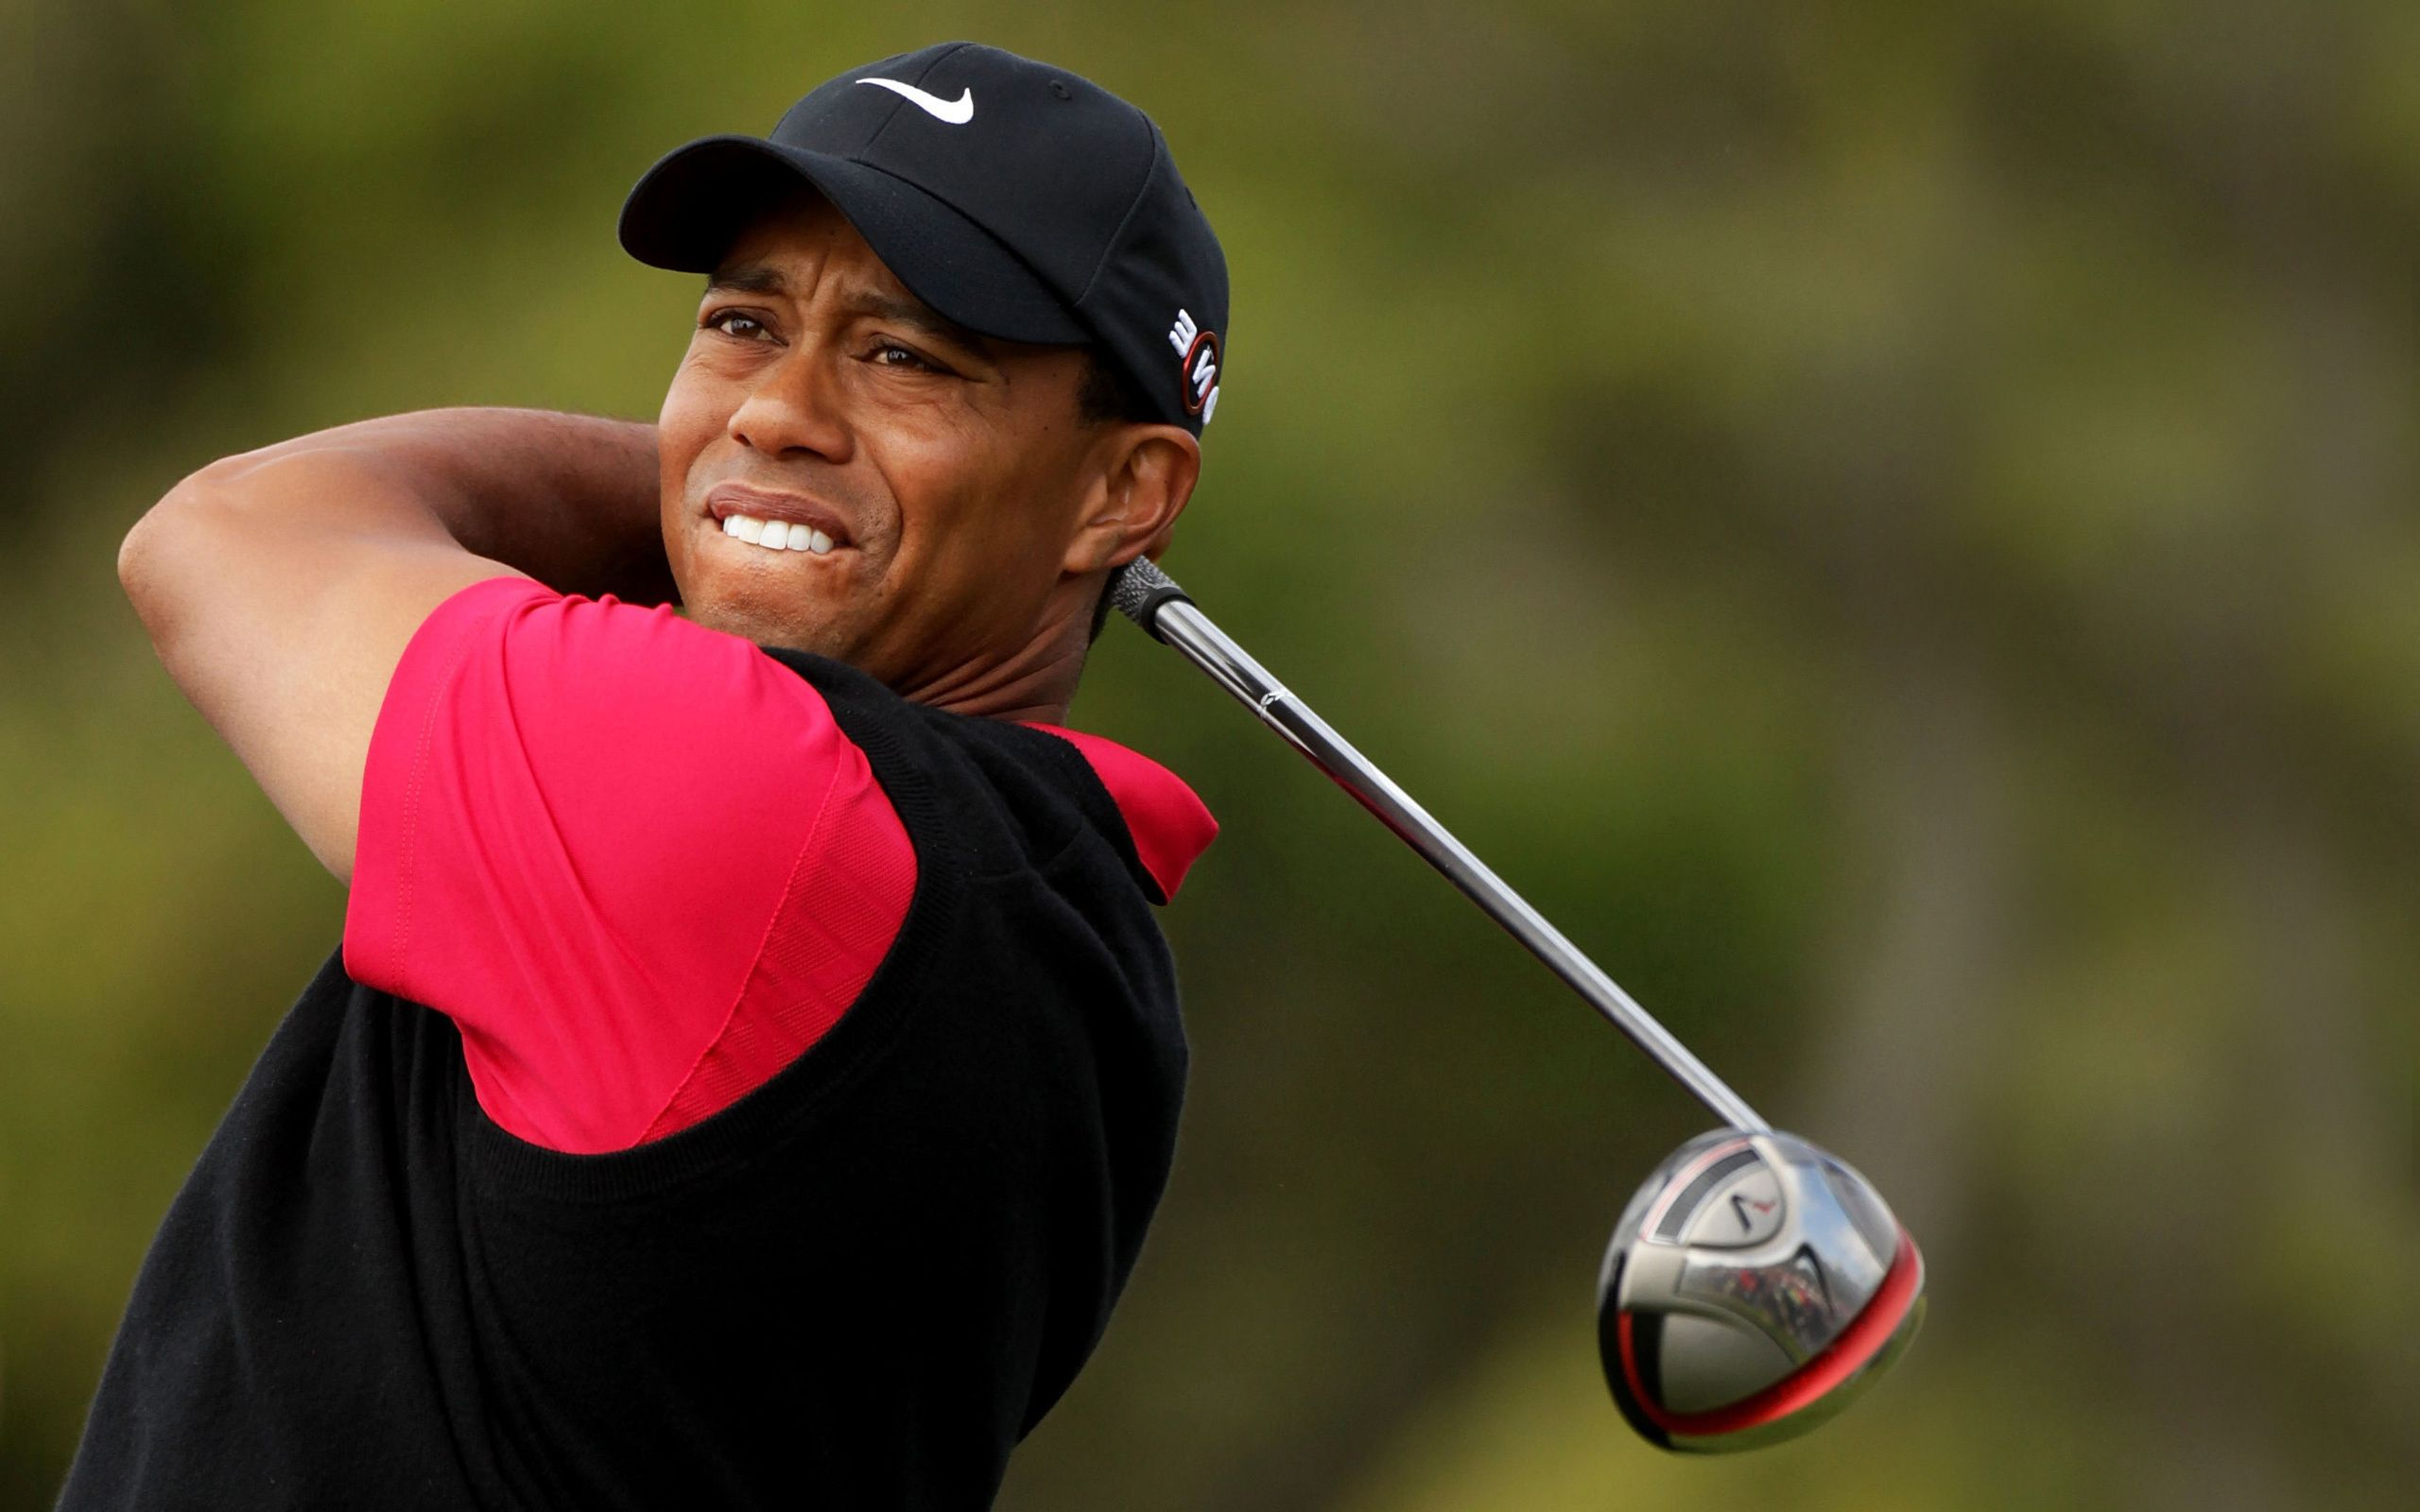 TigerWoods New Club Deals With TaylorMade. News Sports